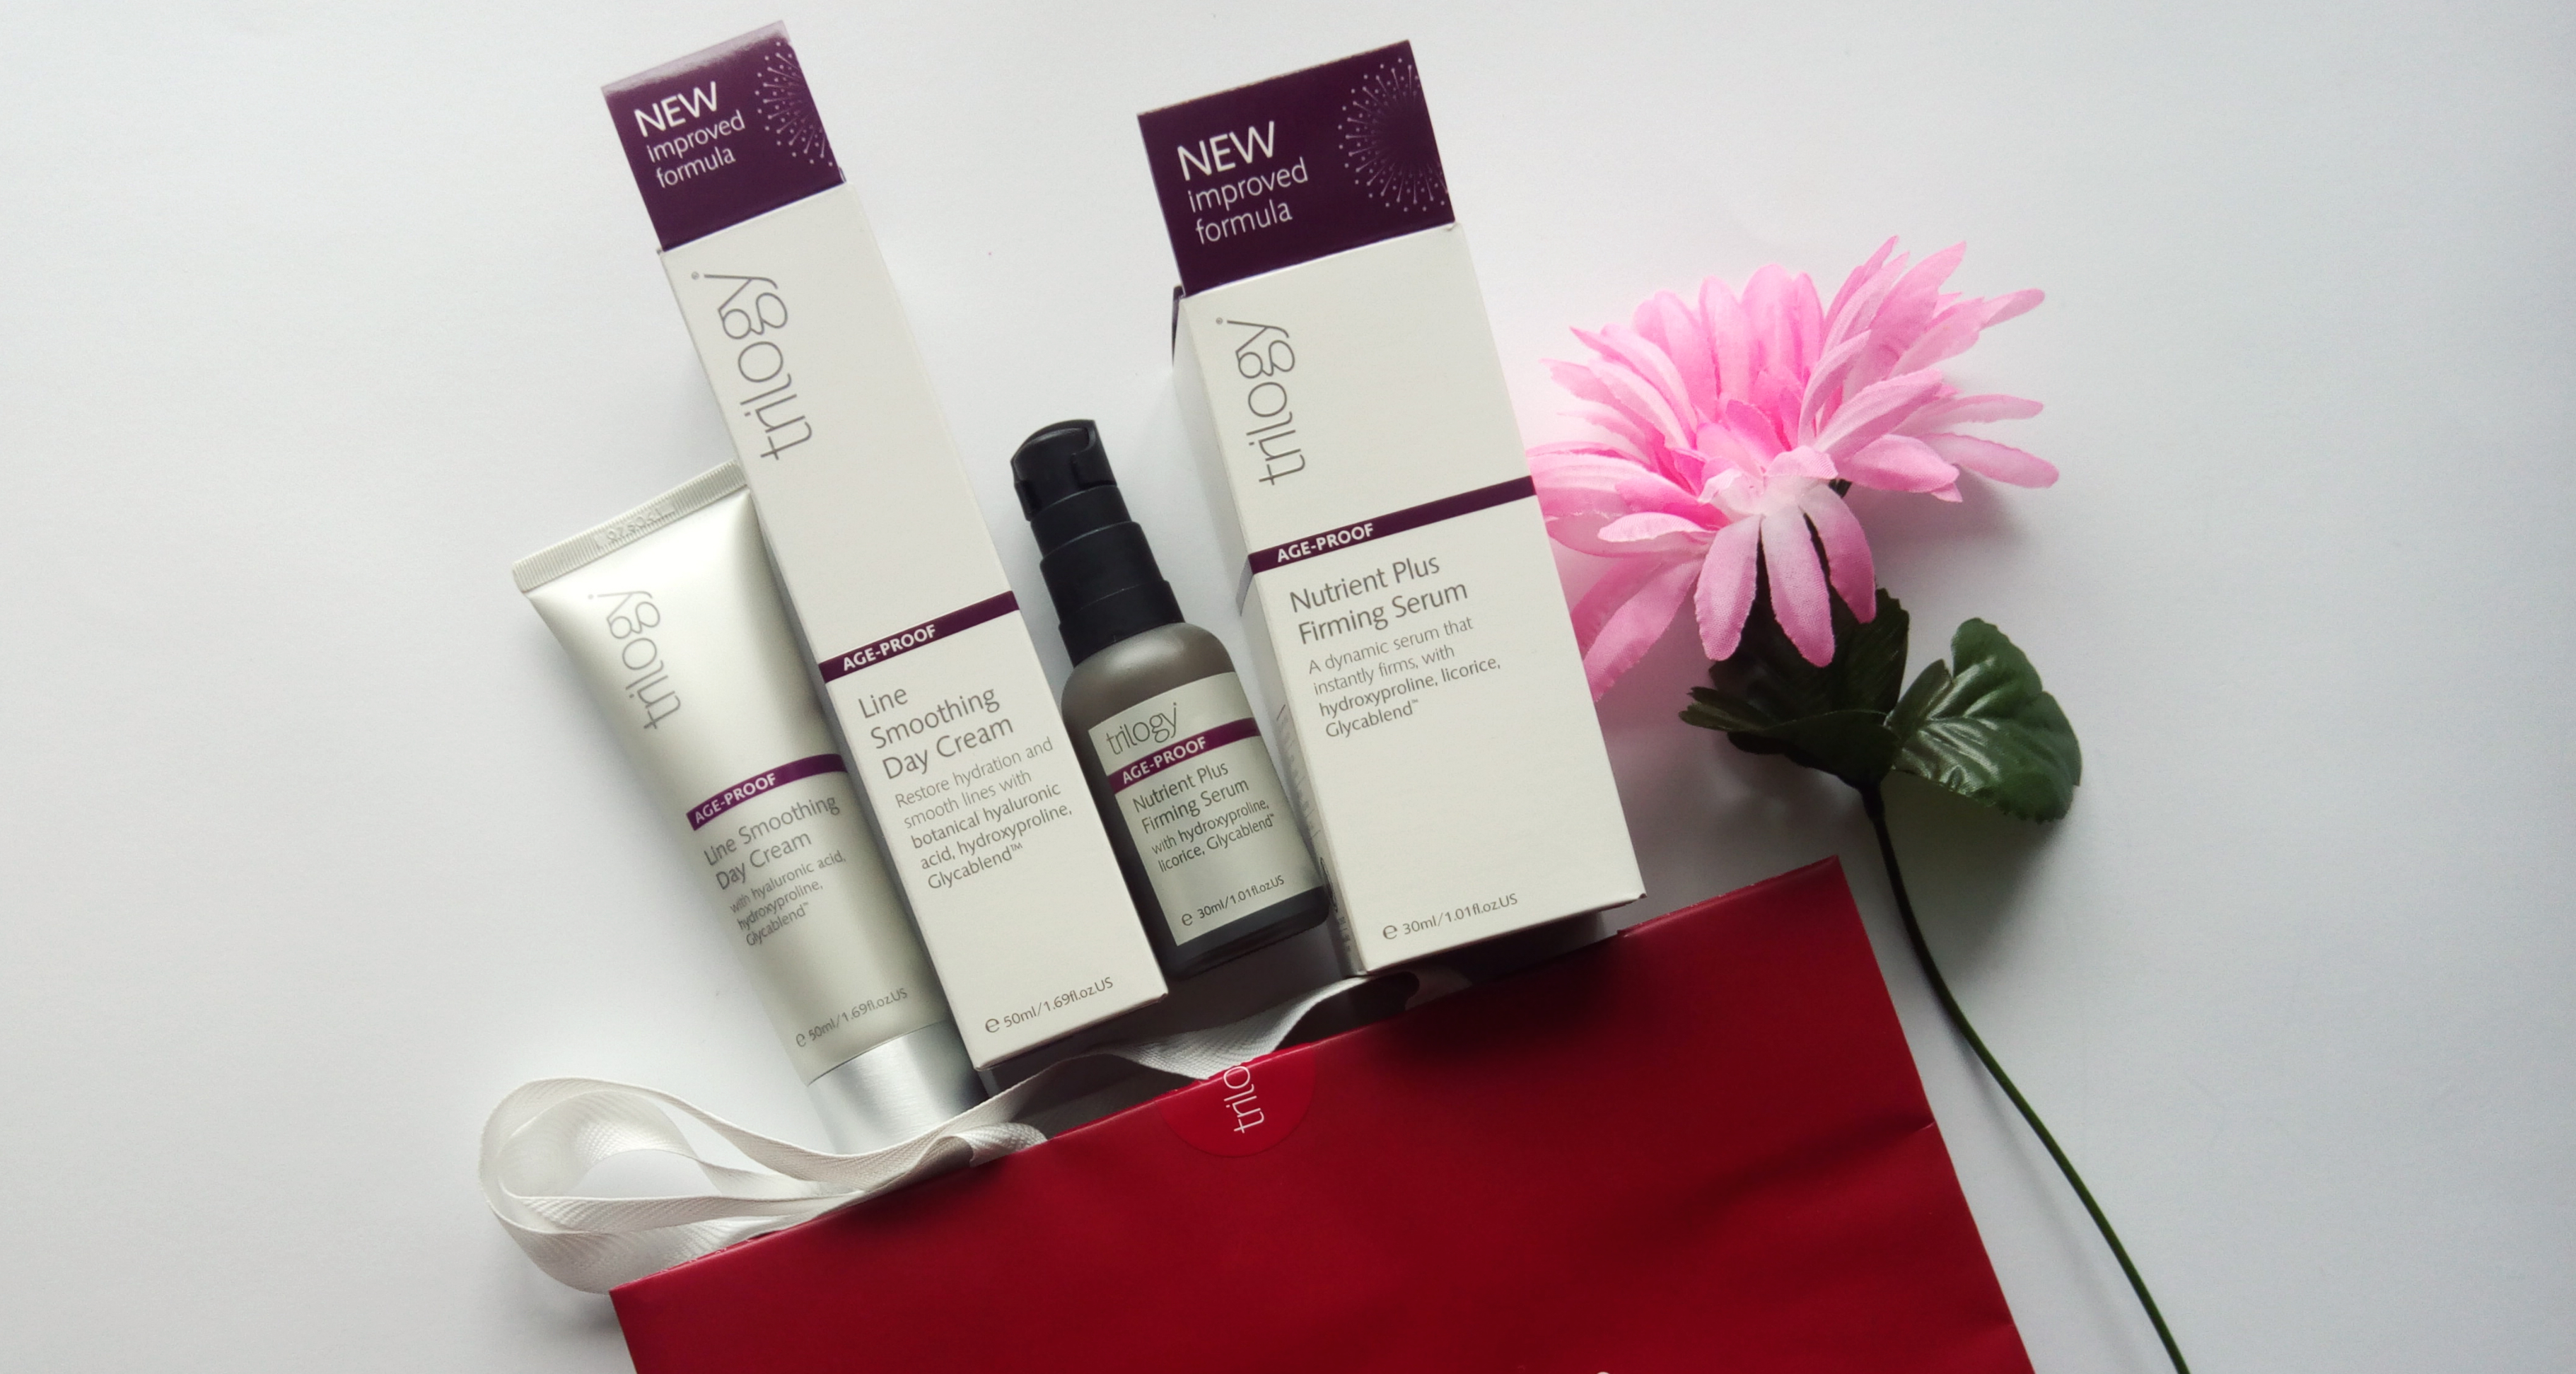 Trilogy Age-Proof Nutrient Plus Firming Serum &  Line Smoothing Day Cream